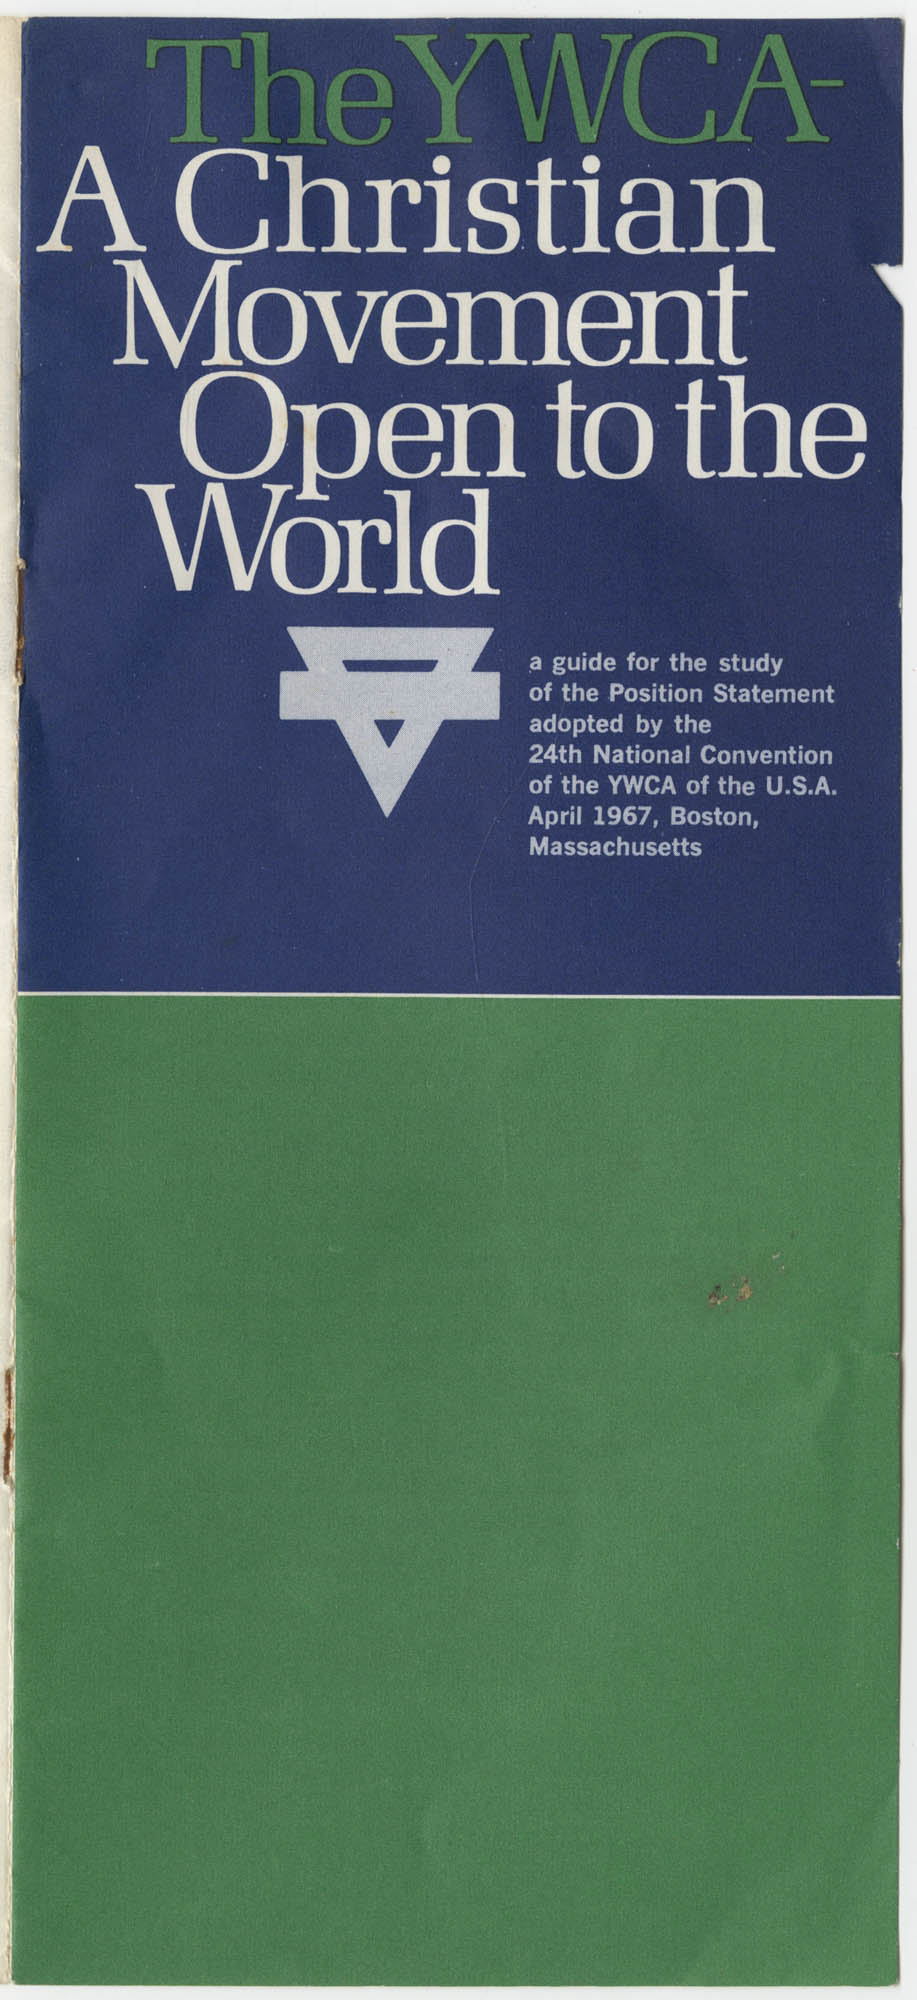 The Y.W.C.A.: A Christian Movement Open to the World, Cover